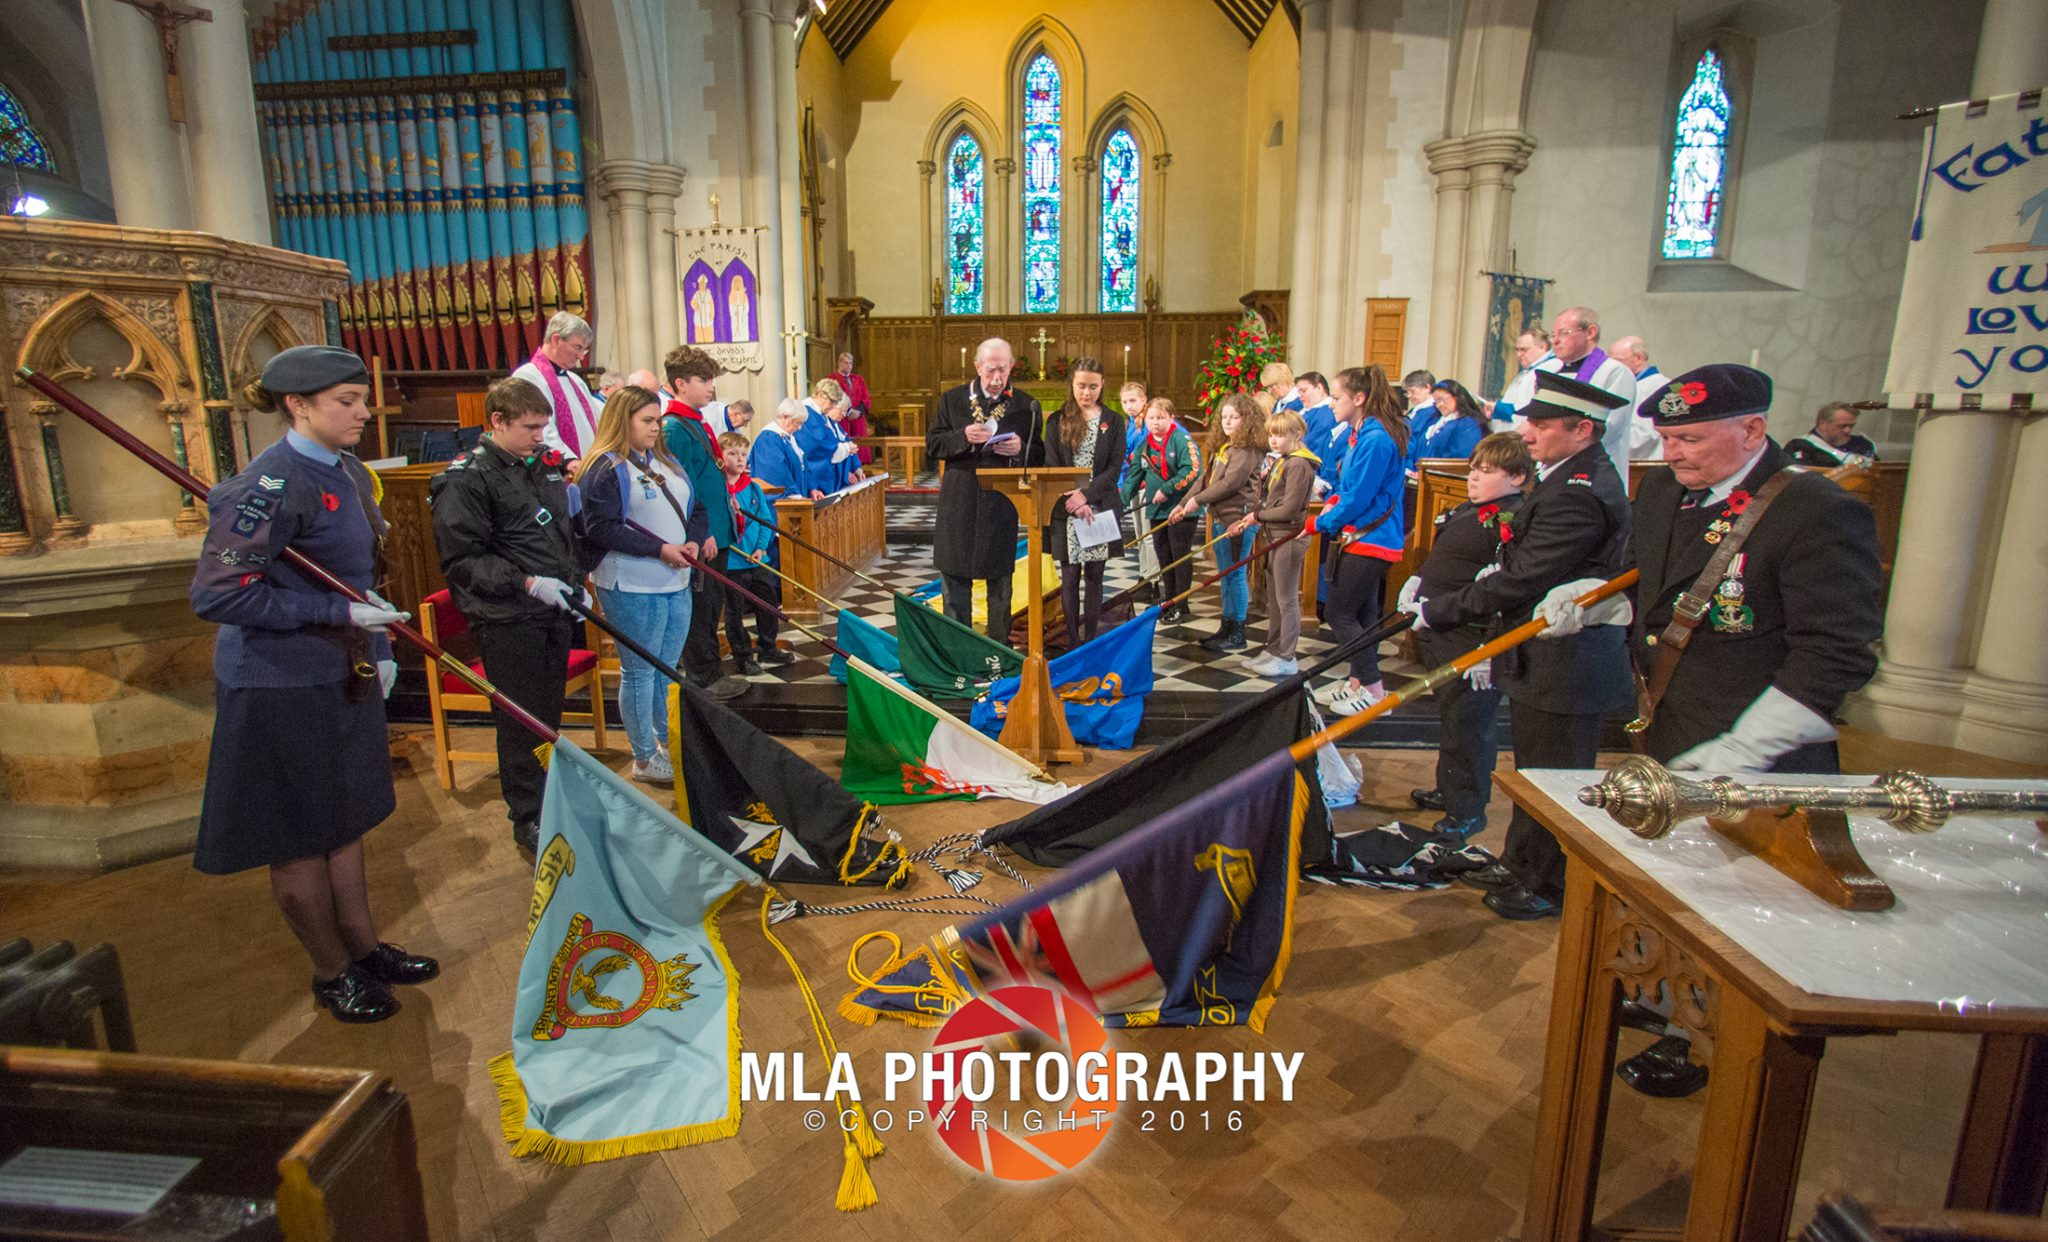 Standards lowered at St David's on Remembrance Sunday